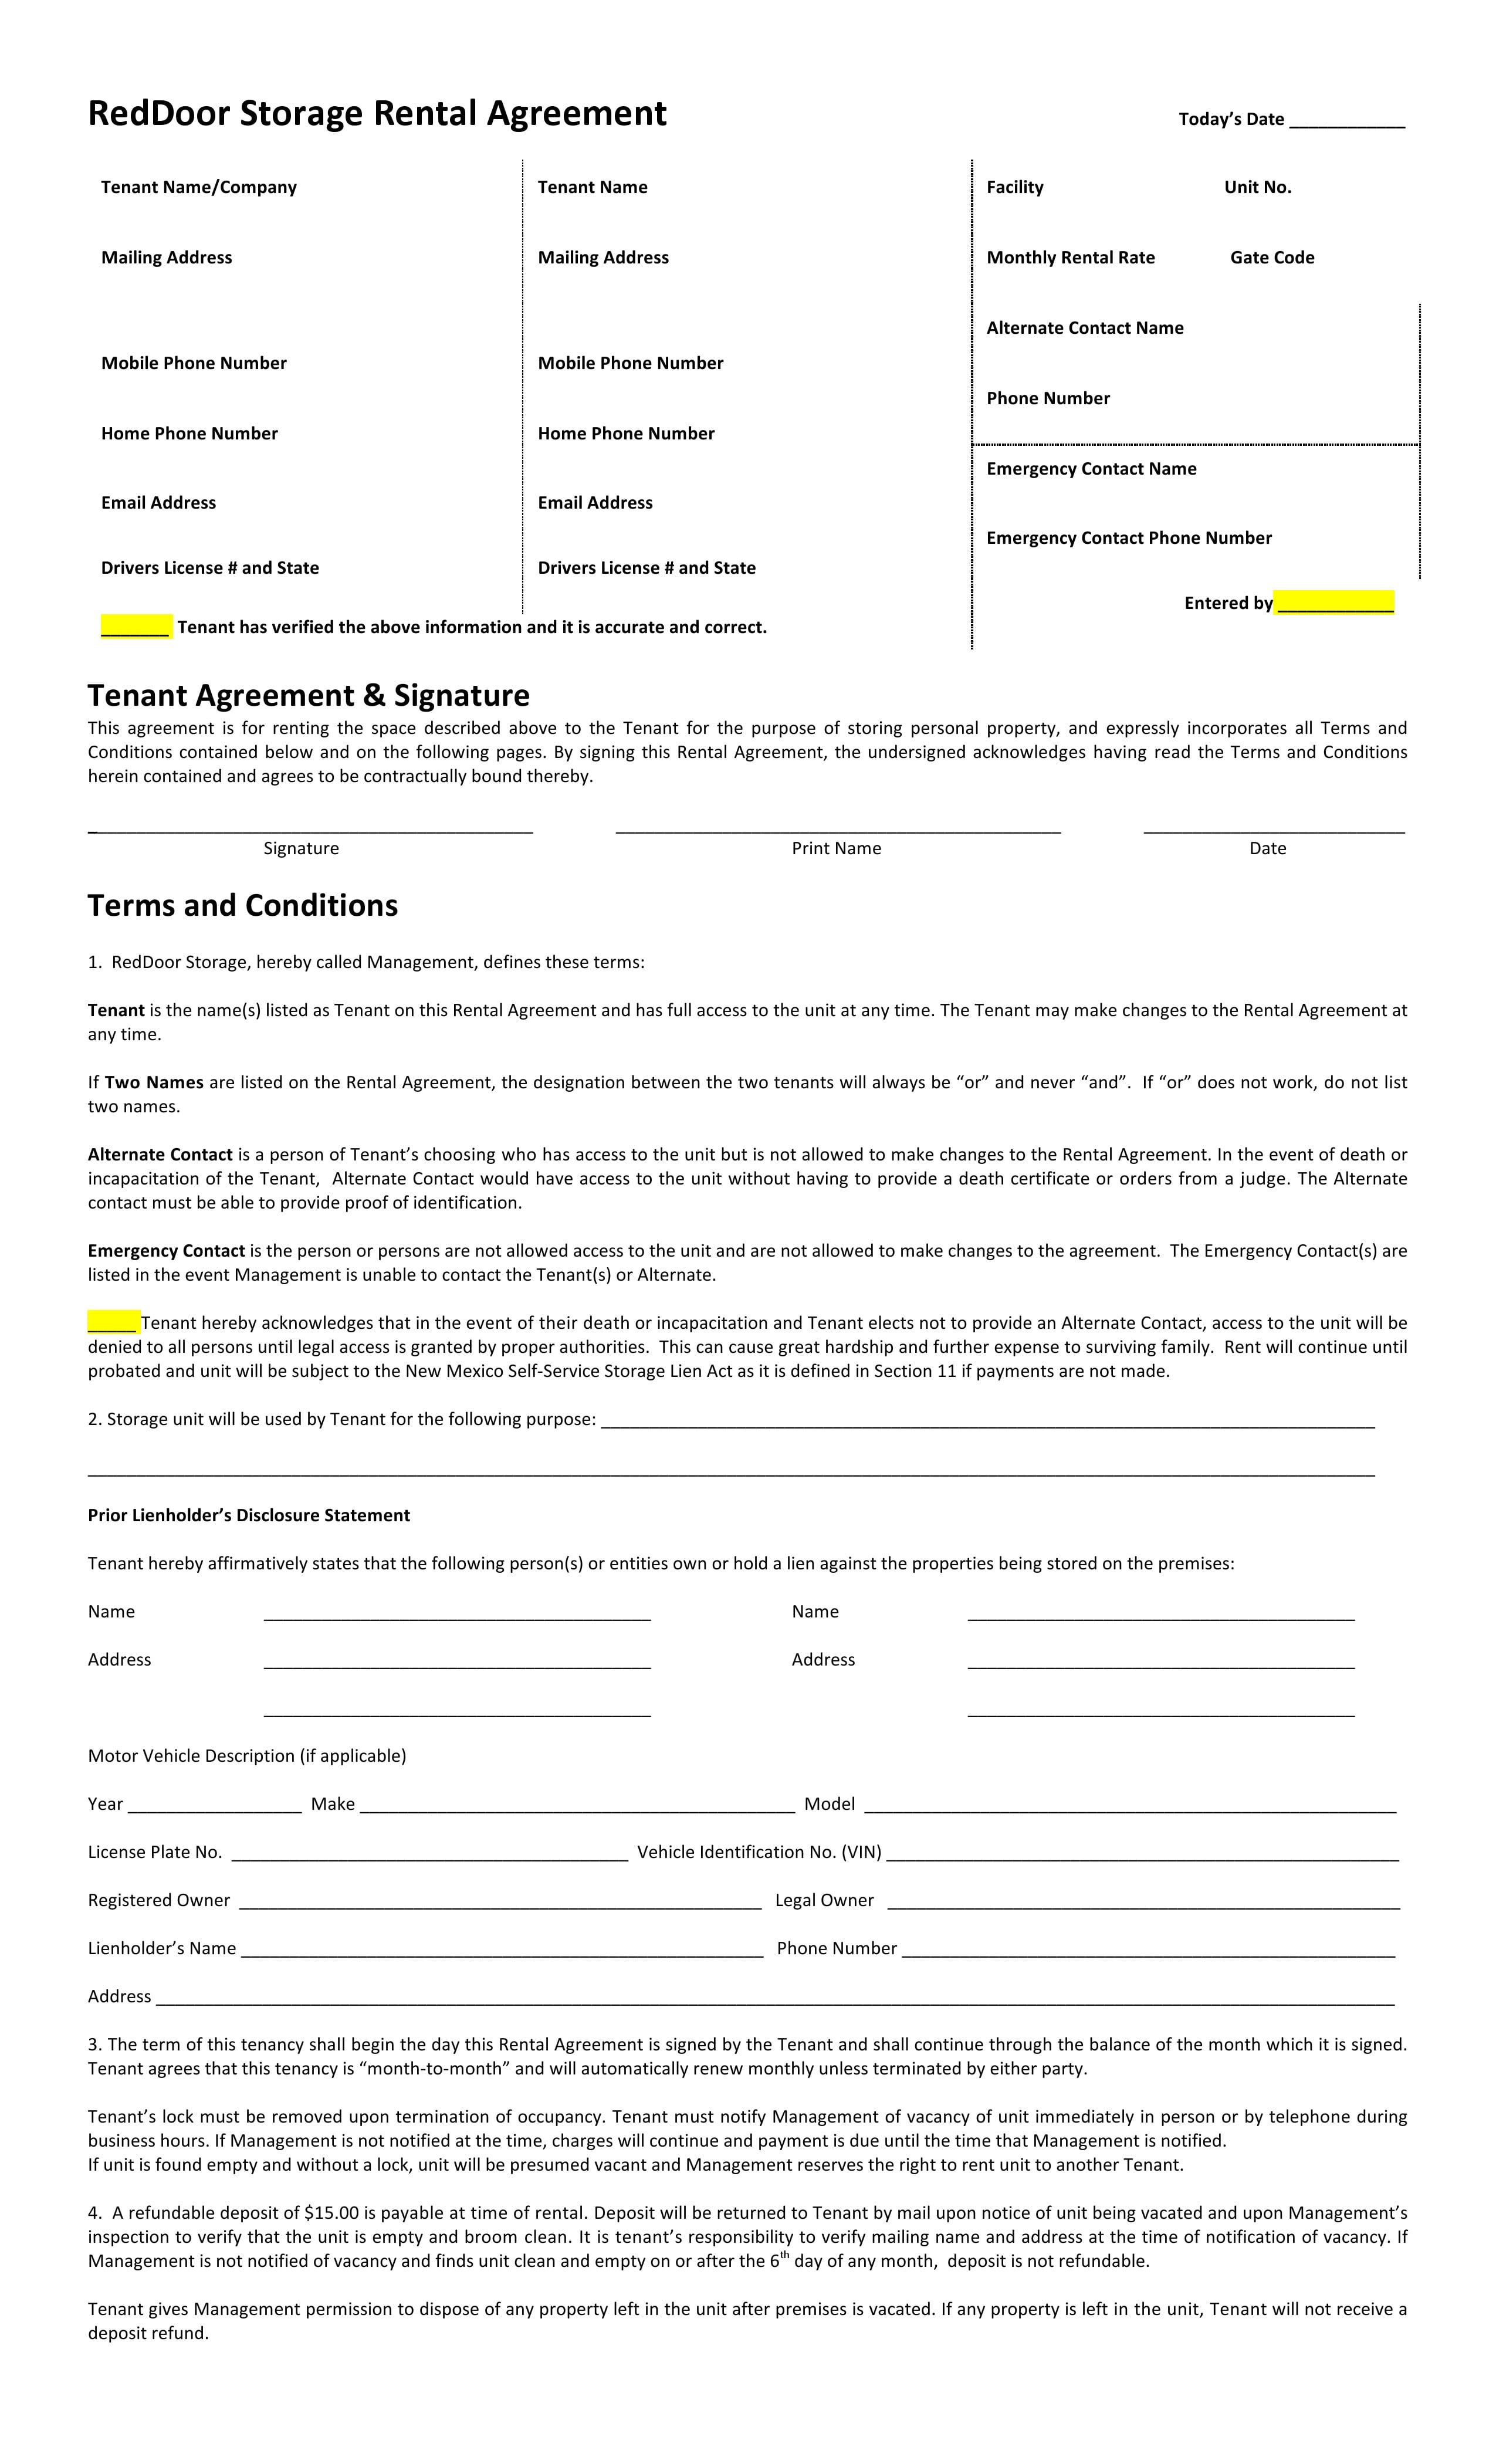 New Mexico RedDoor Storage Rental Agreement